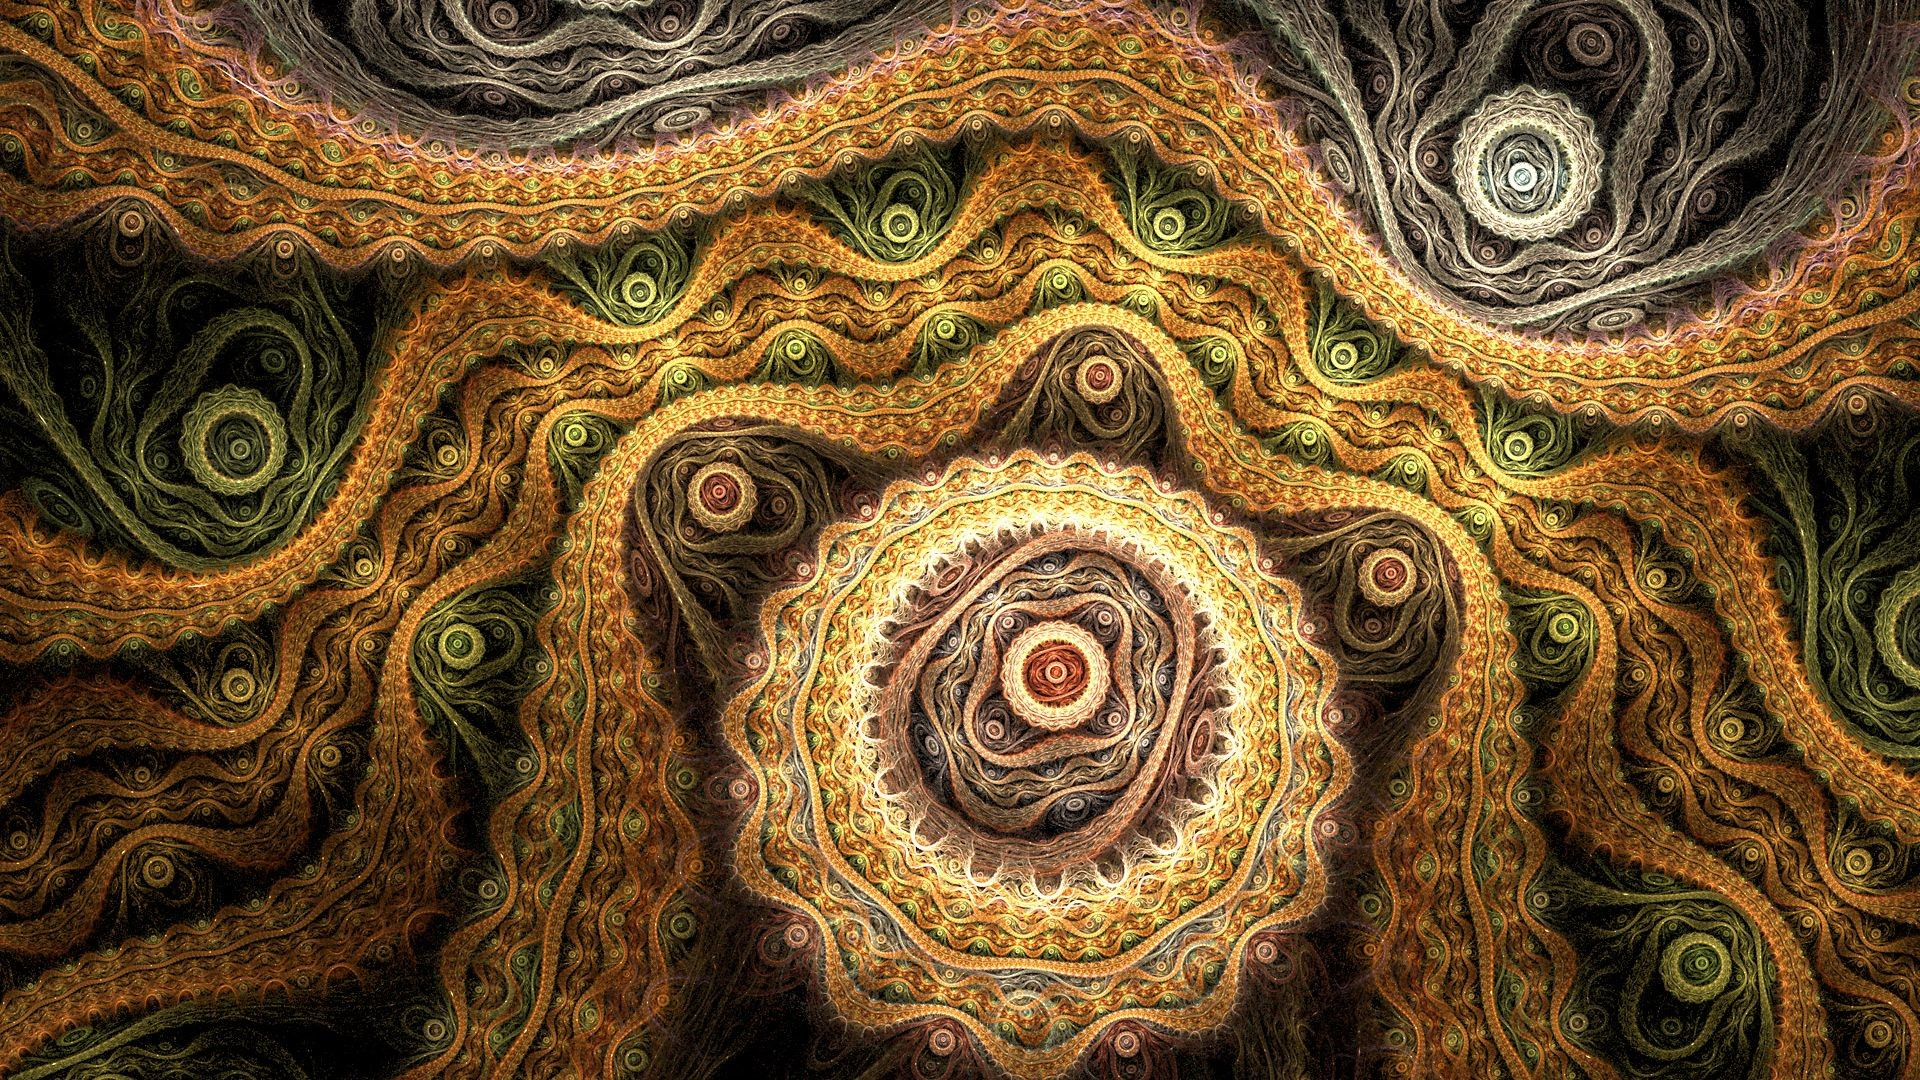 Download Psychedelic wallpaper,Download Artistic .